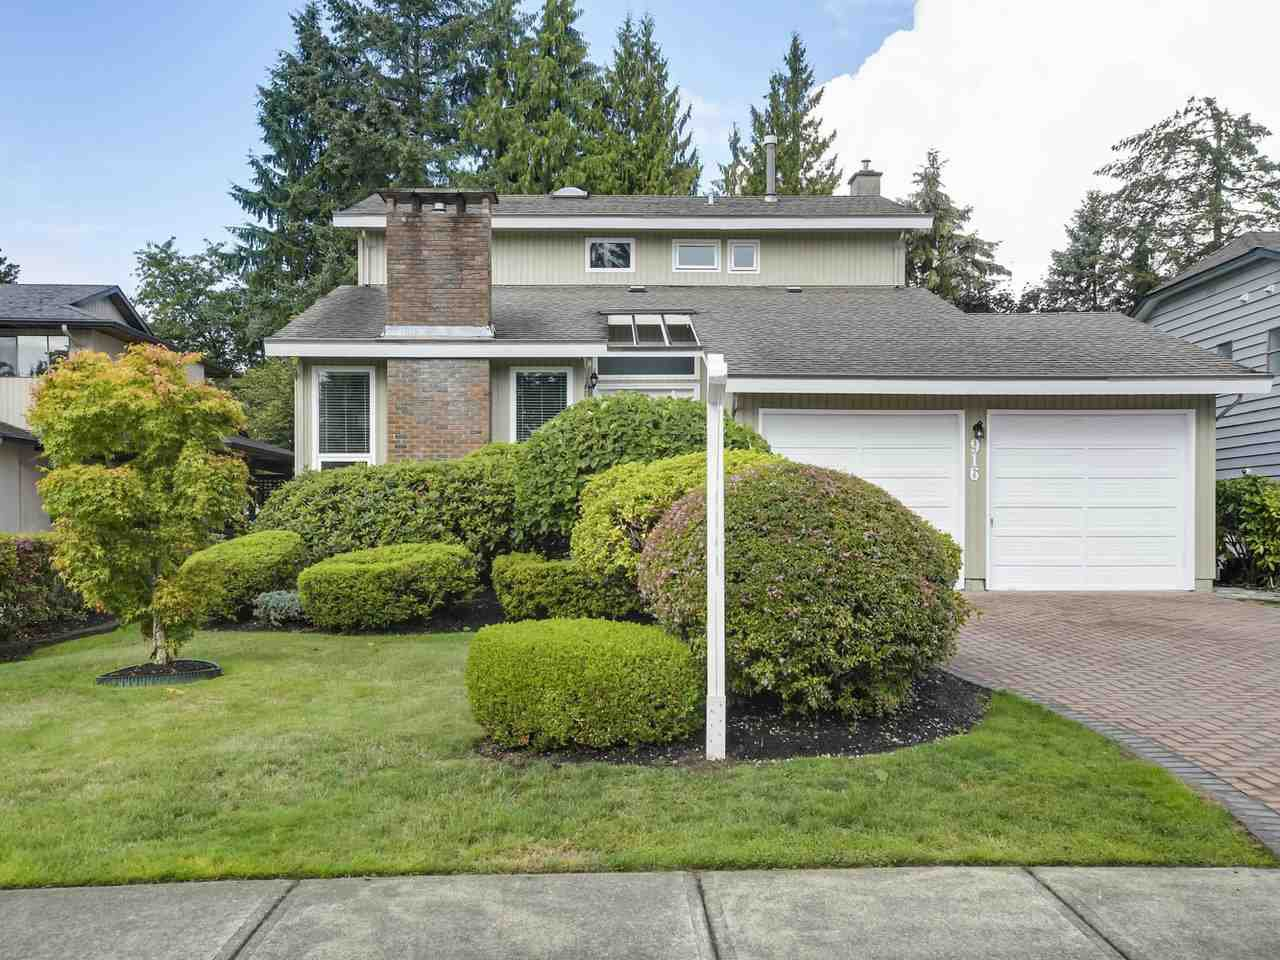 """Main Photo: 916 MERRITT Street in Coquitlam: Harbour Chines House for sale in """"HARBOUR CHINES"""" : MLS®# R2305133"""